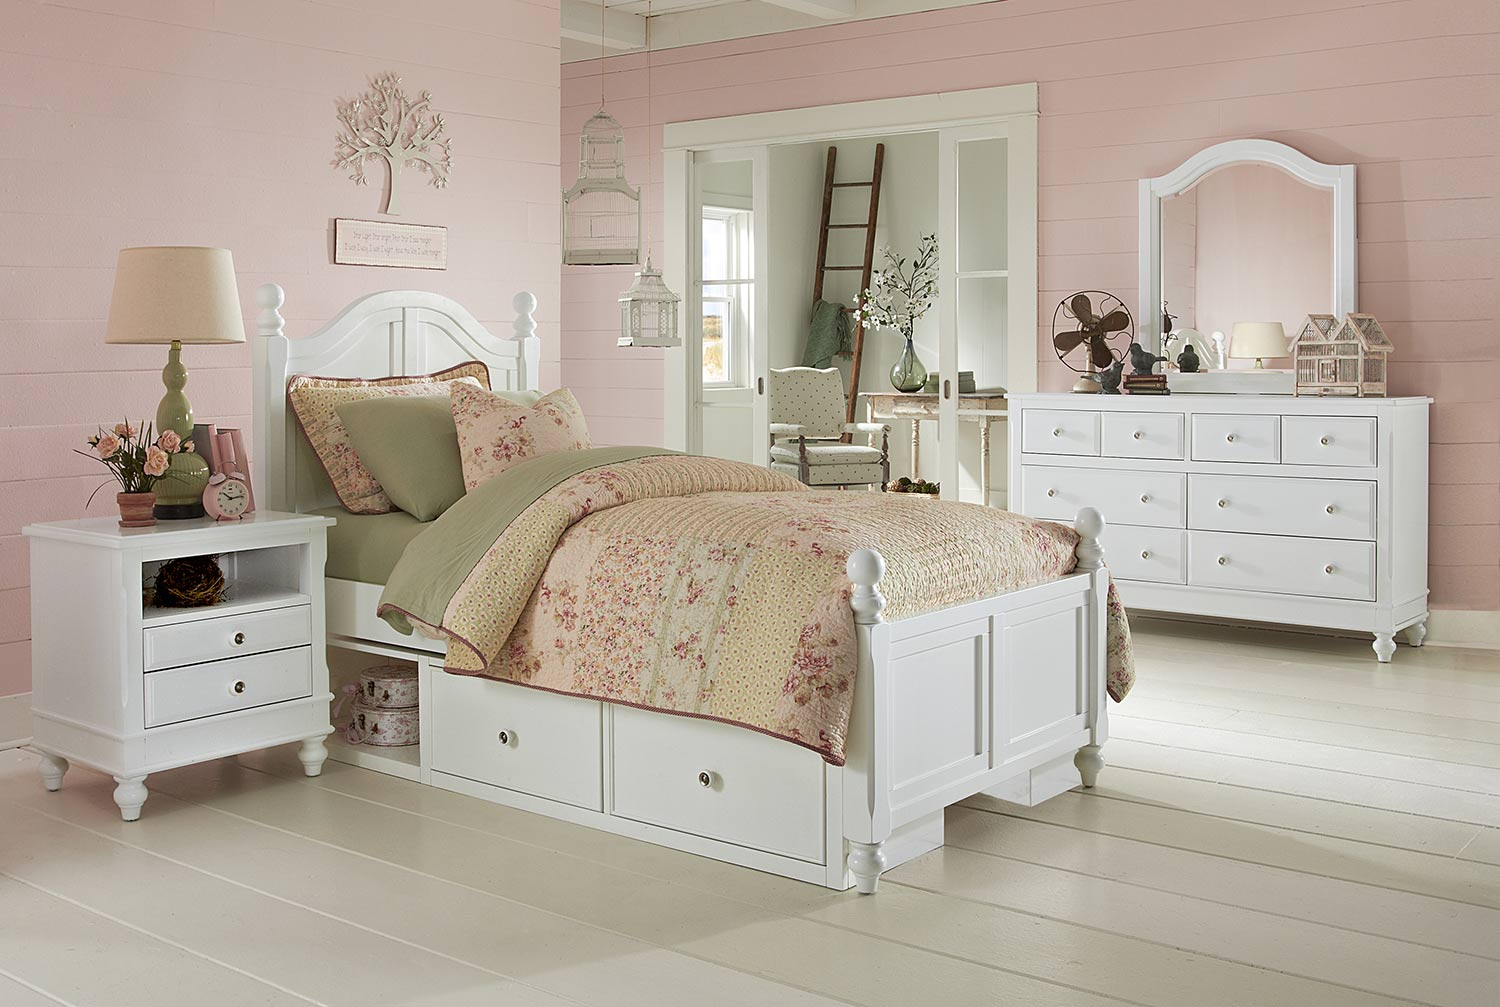 NE Kids Lake House Payton Arch Bedroom Set With Storage - White